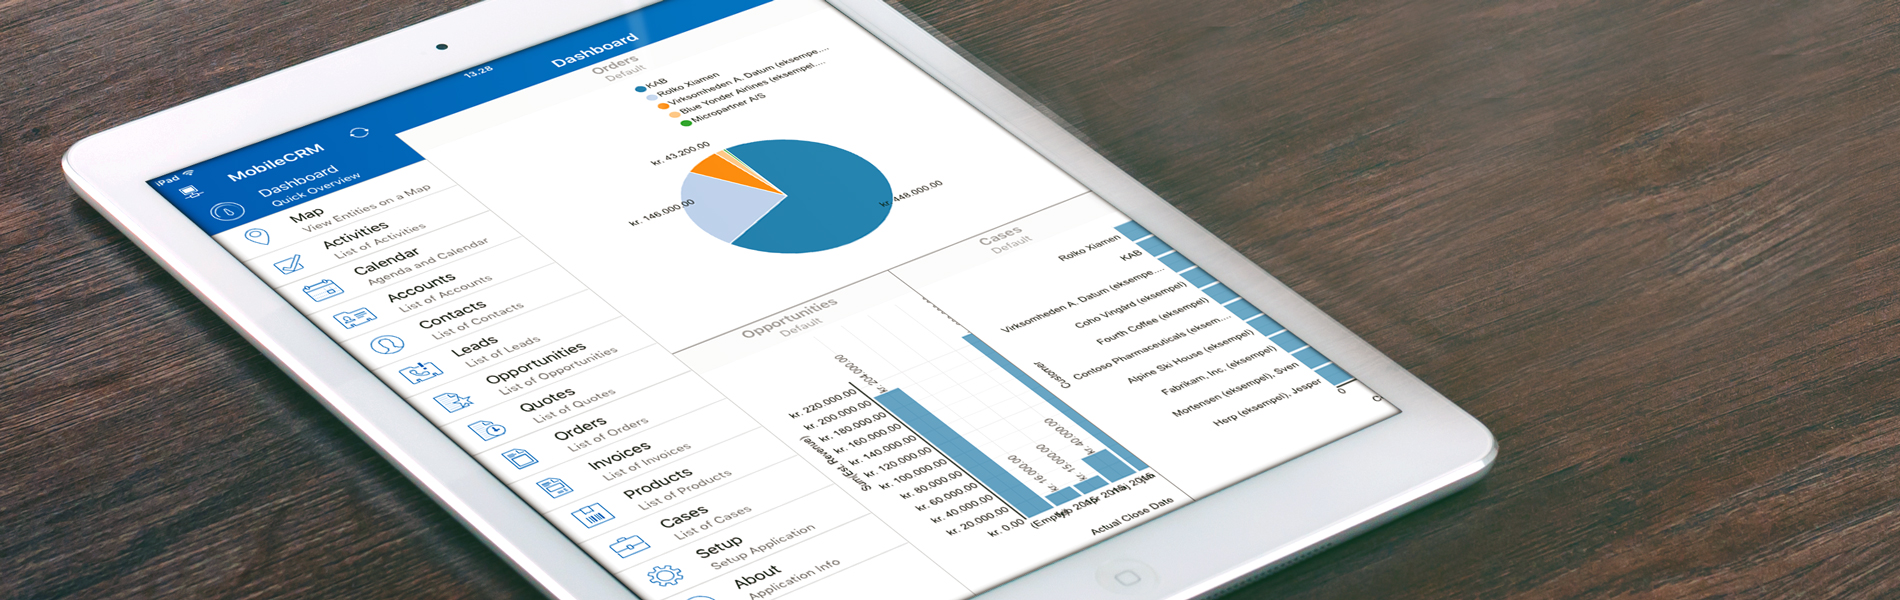 CRM dashboard Ipad